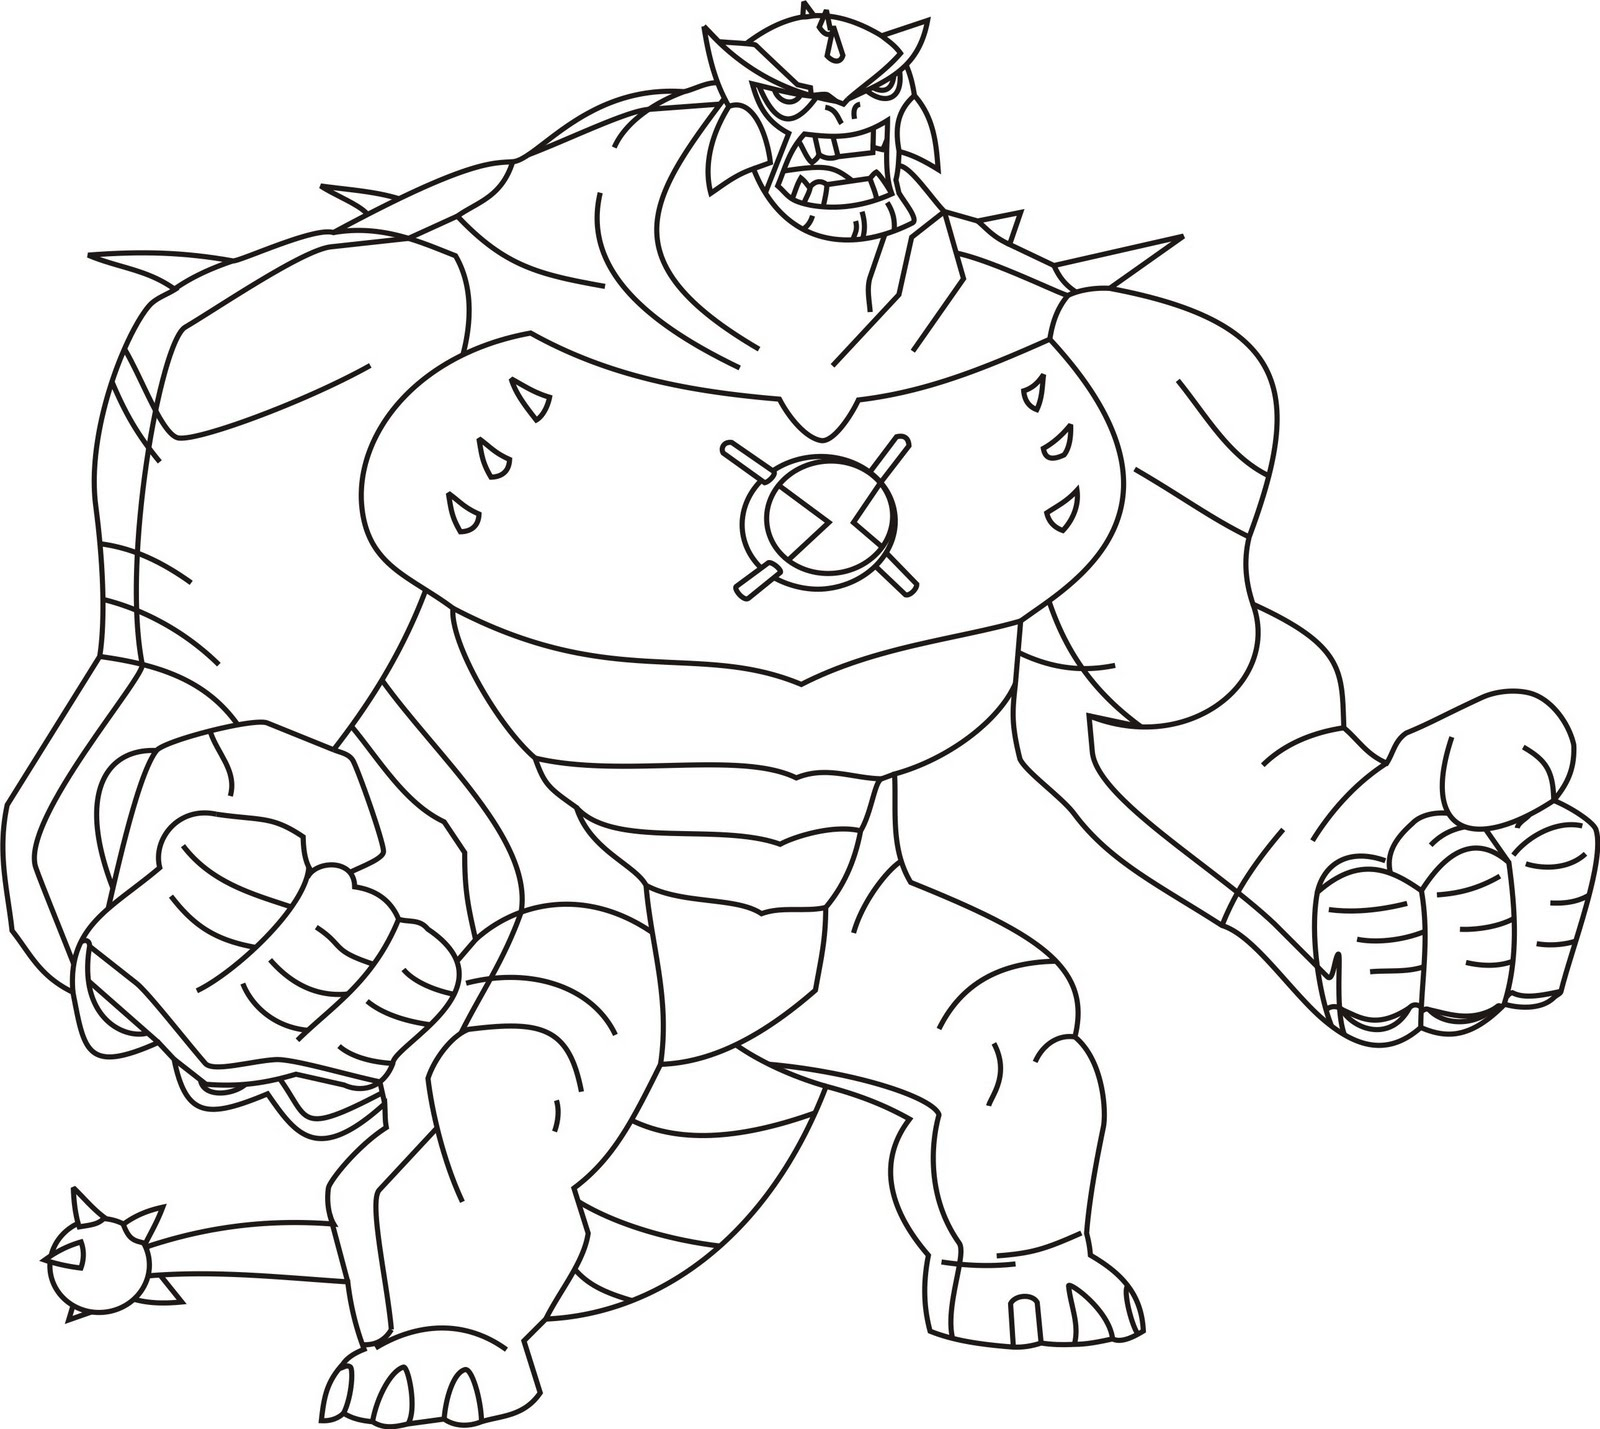 List of Coloring Book Ben 10 Pict - Best Pictures